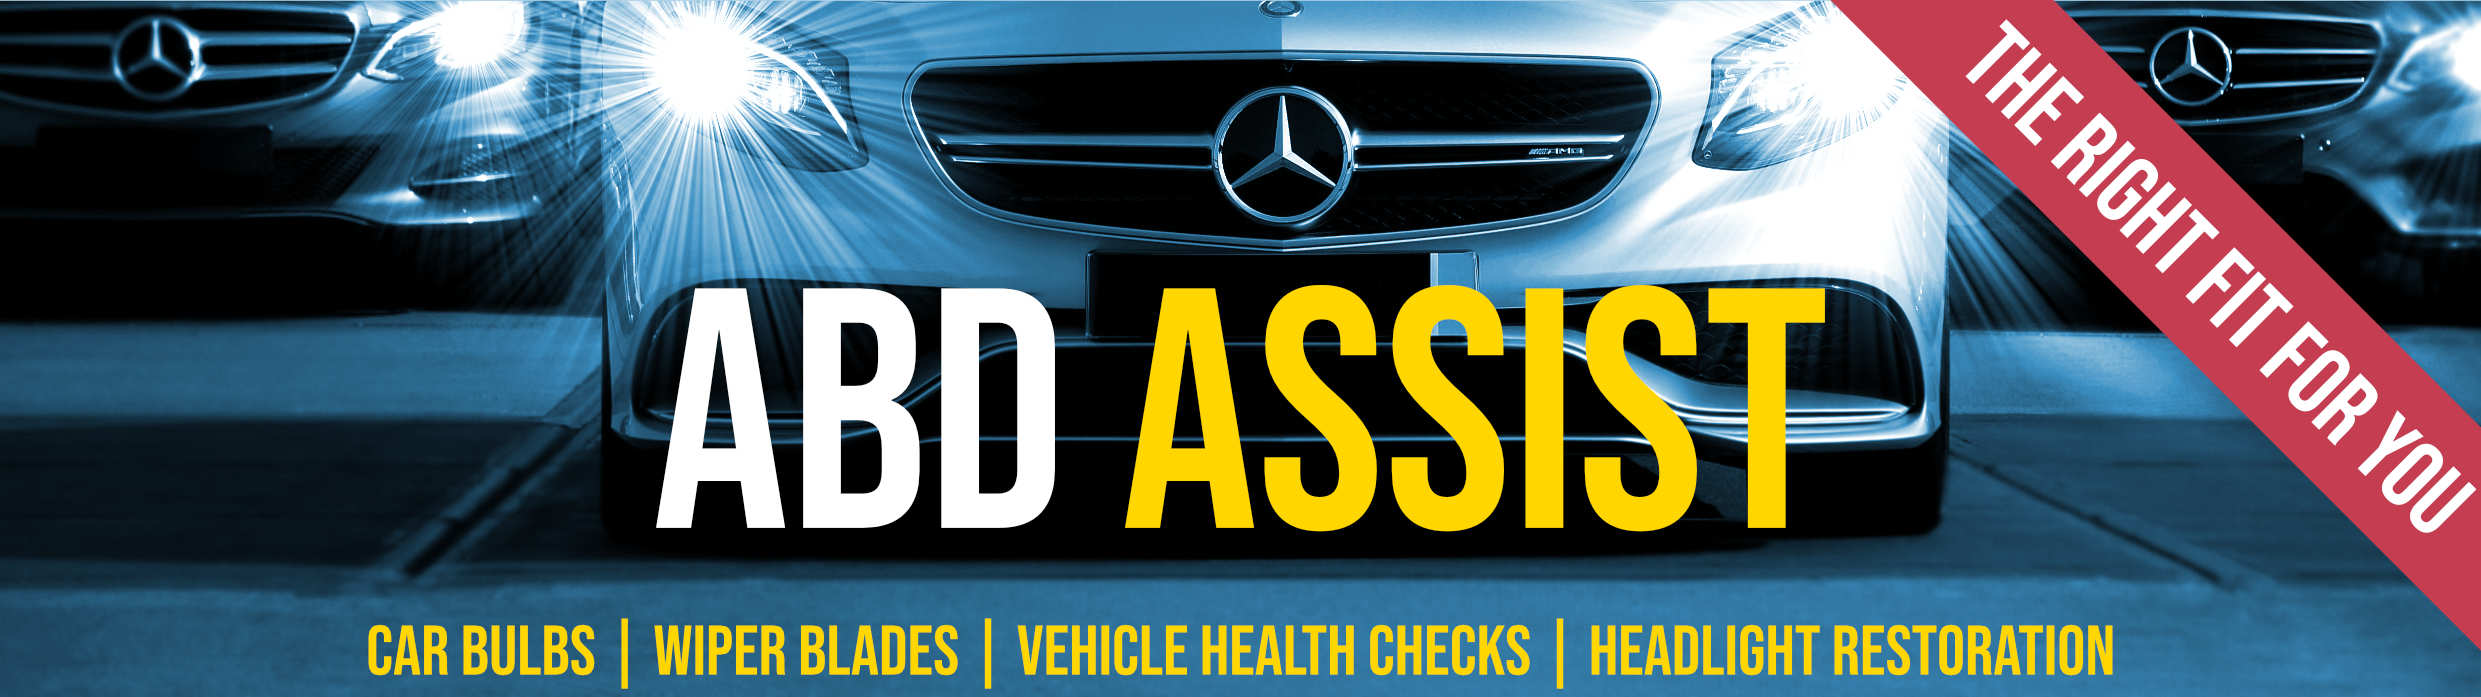 ABD Assist - Car Bulb and Wiper Blade Fitting